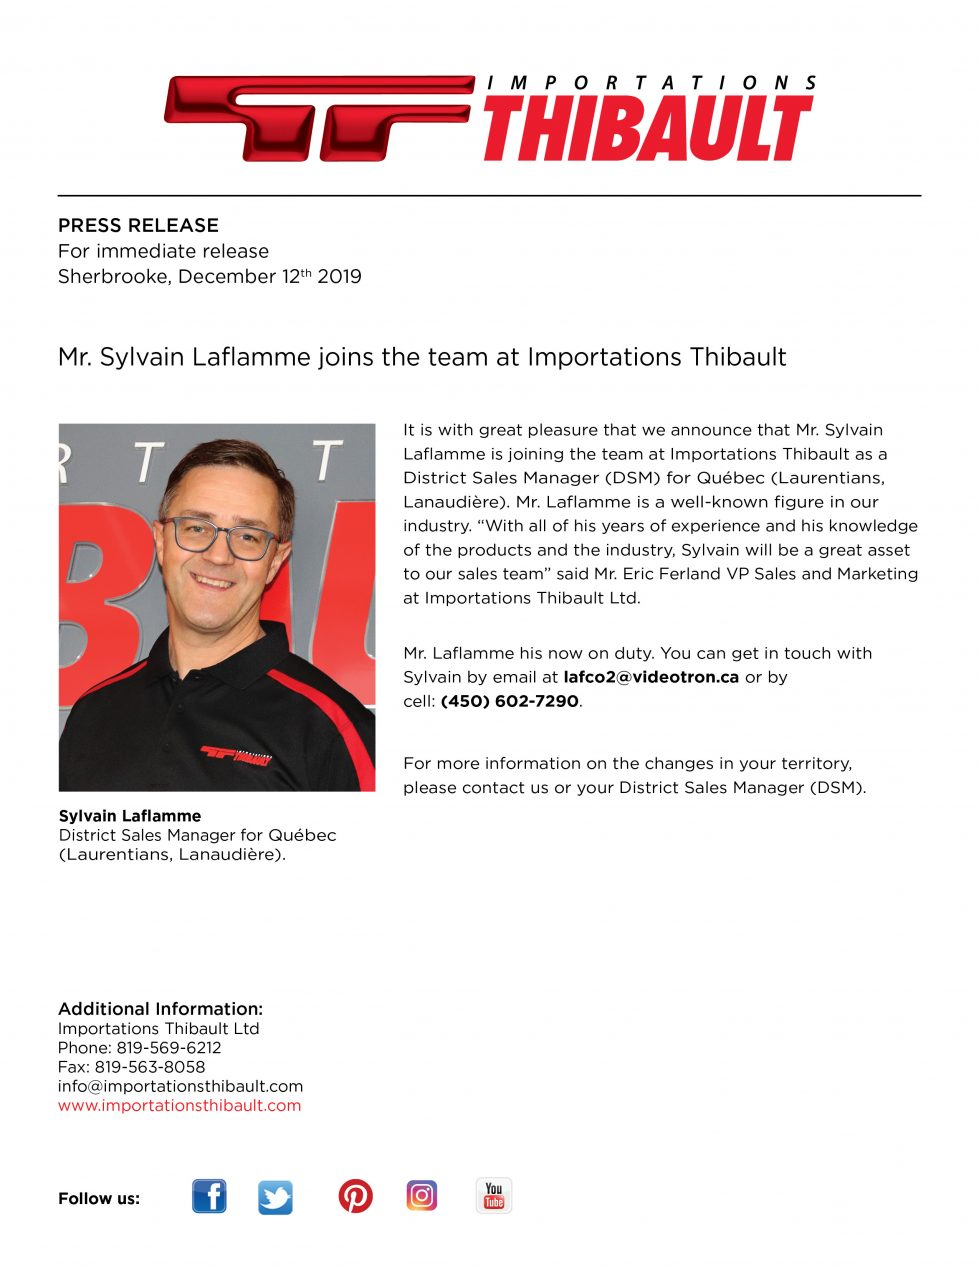 Mr. Sylvain Laflamme joins the Importations Thibault team.